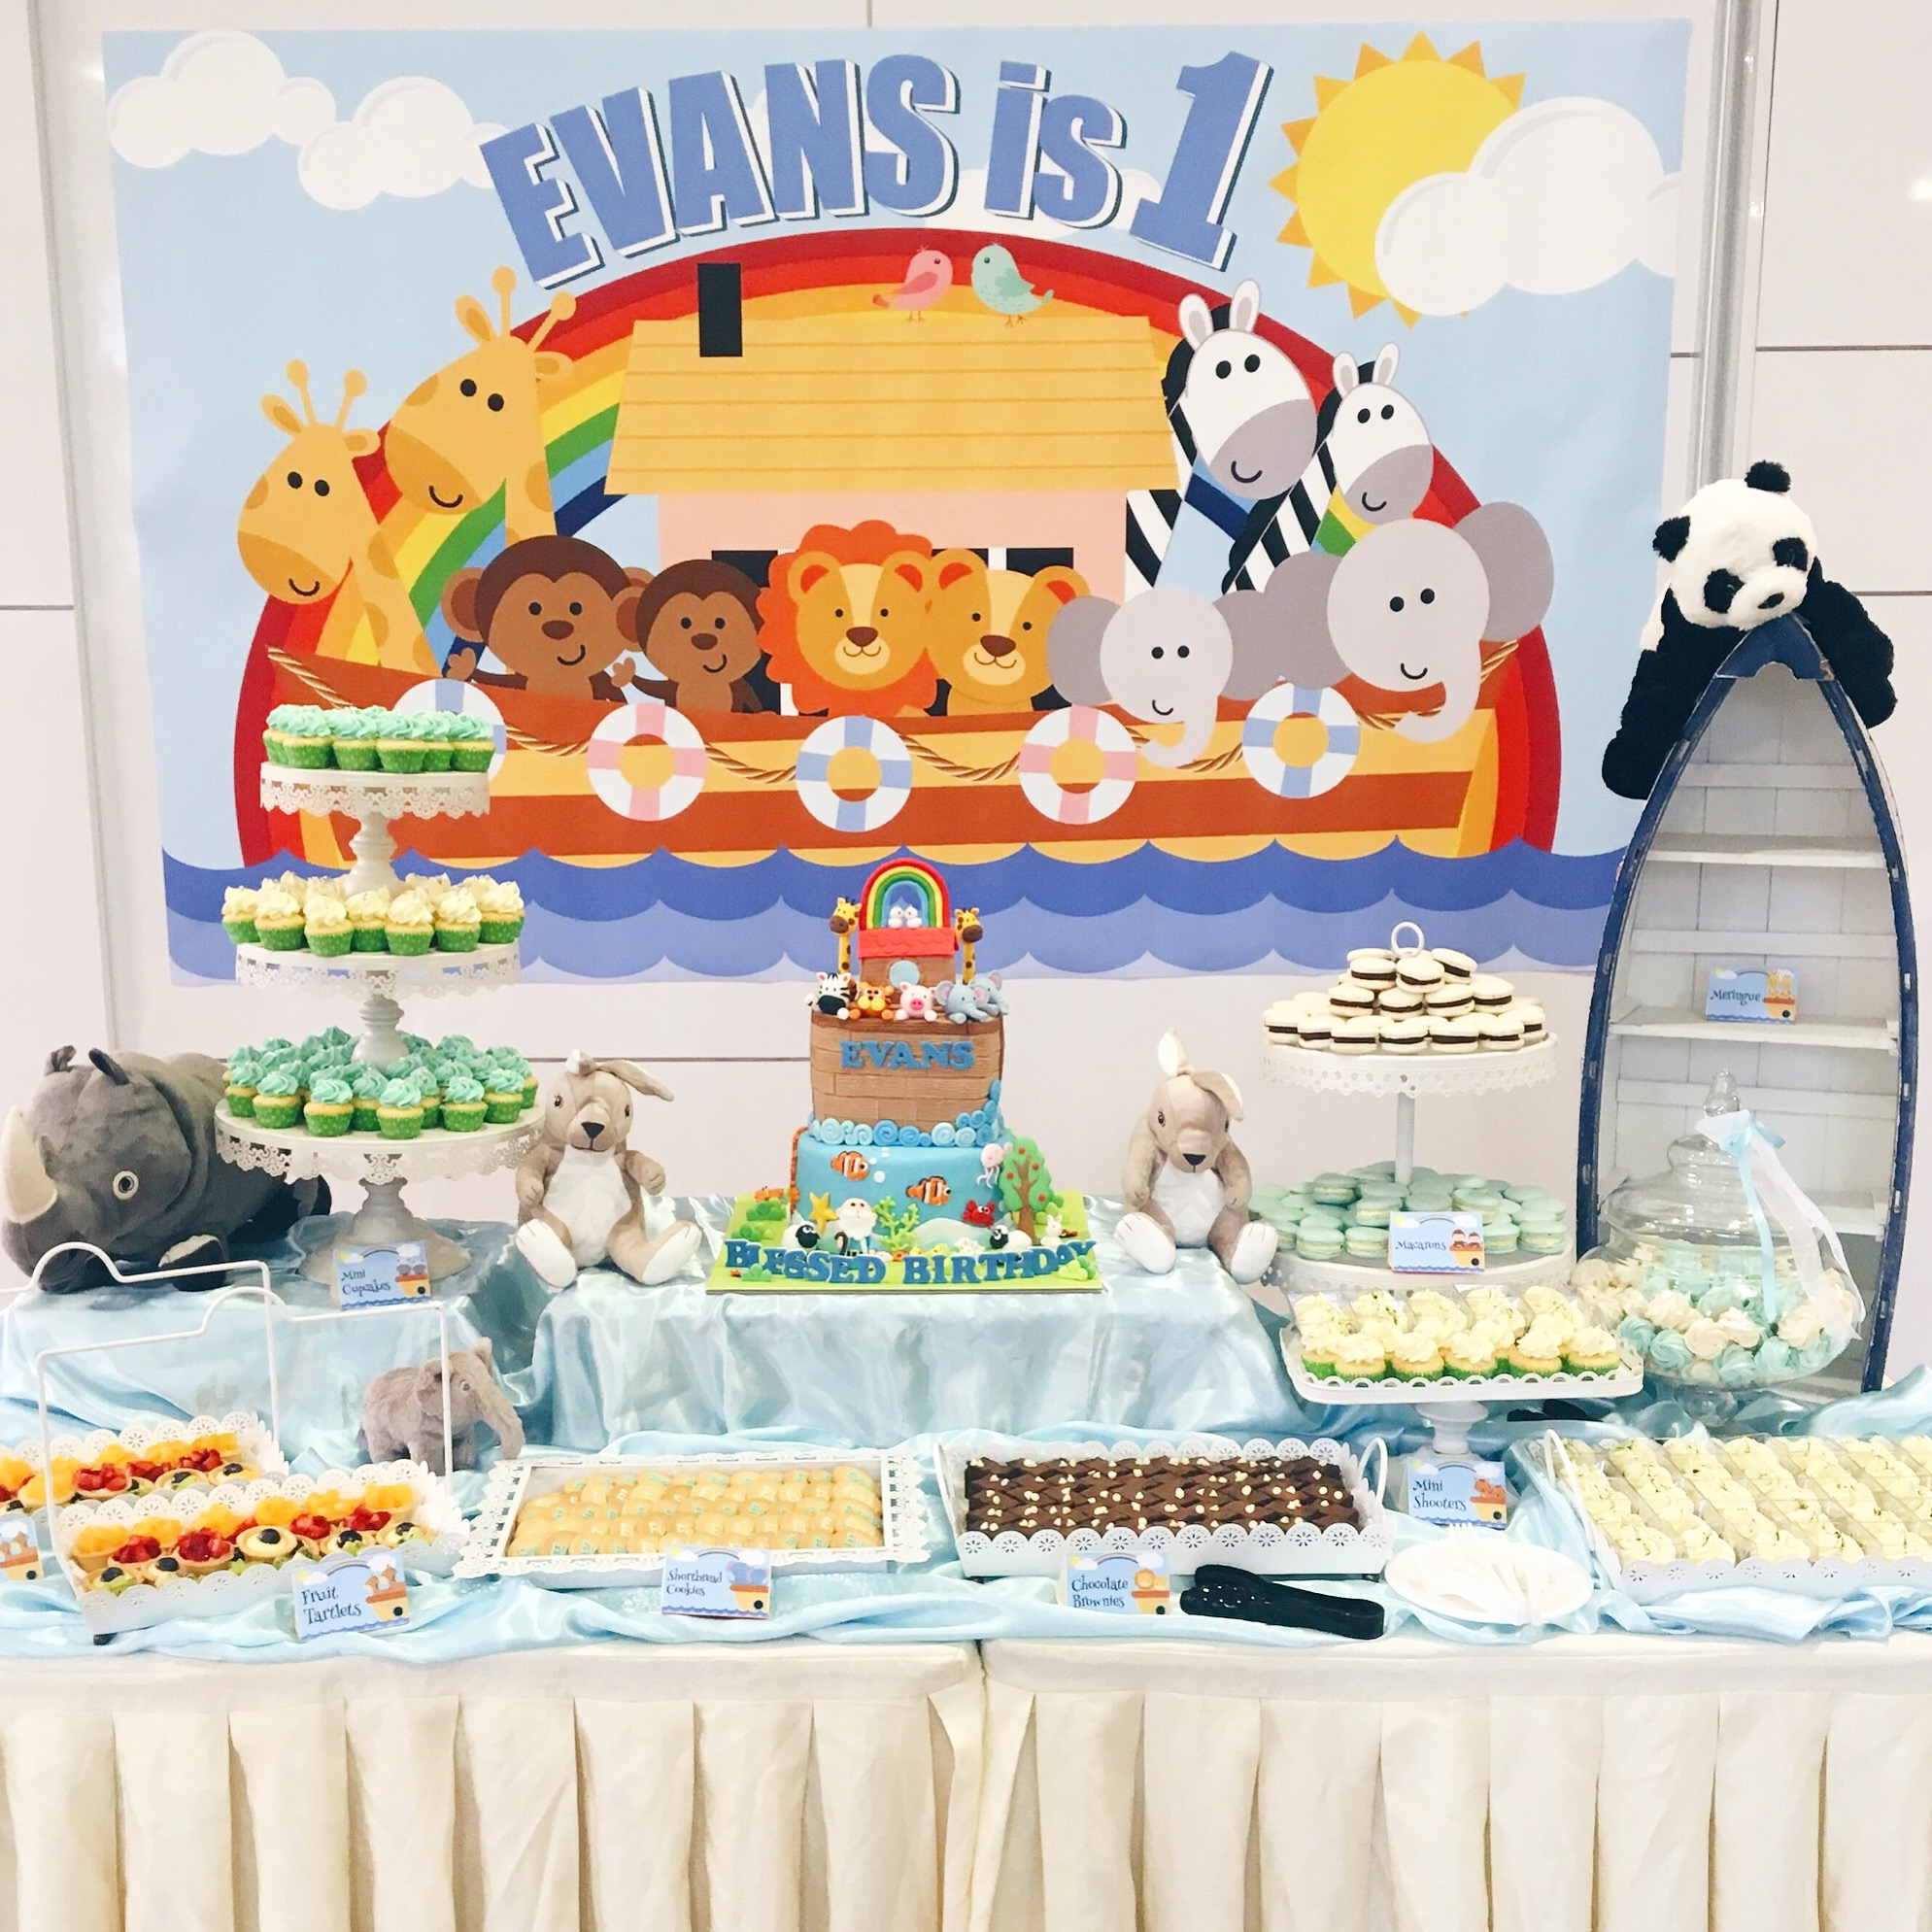 Noah's Ark Themed Dessert Table